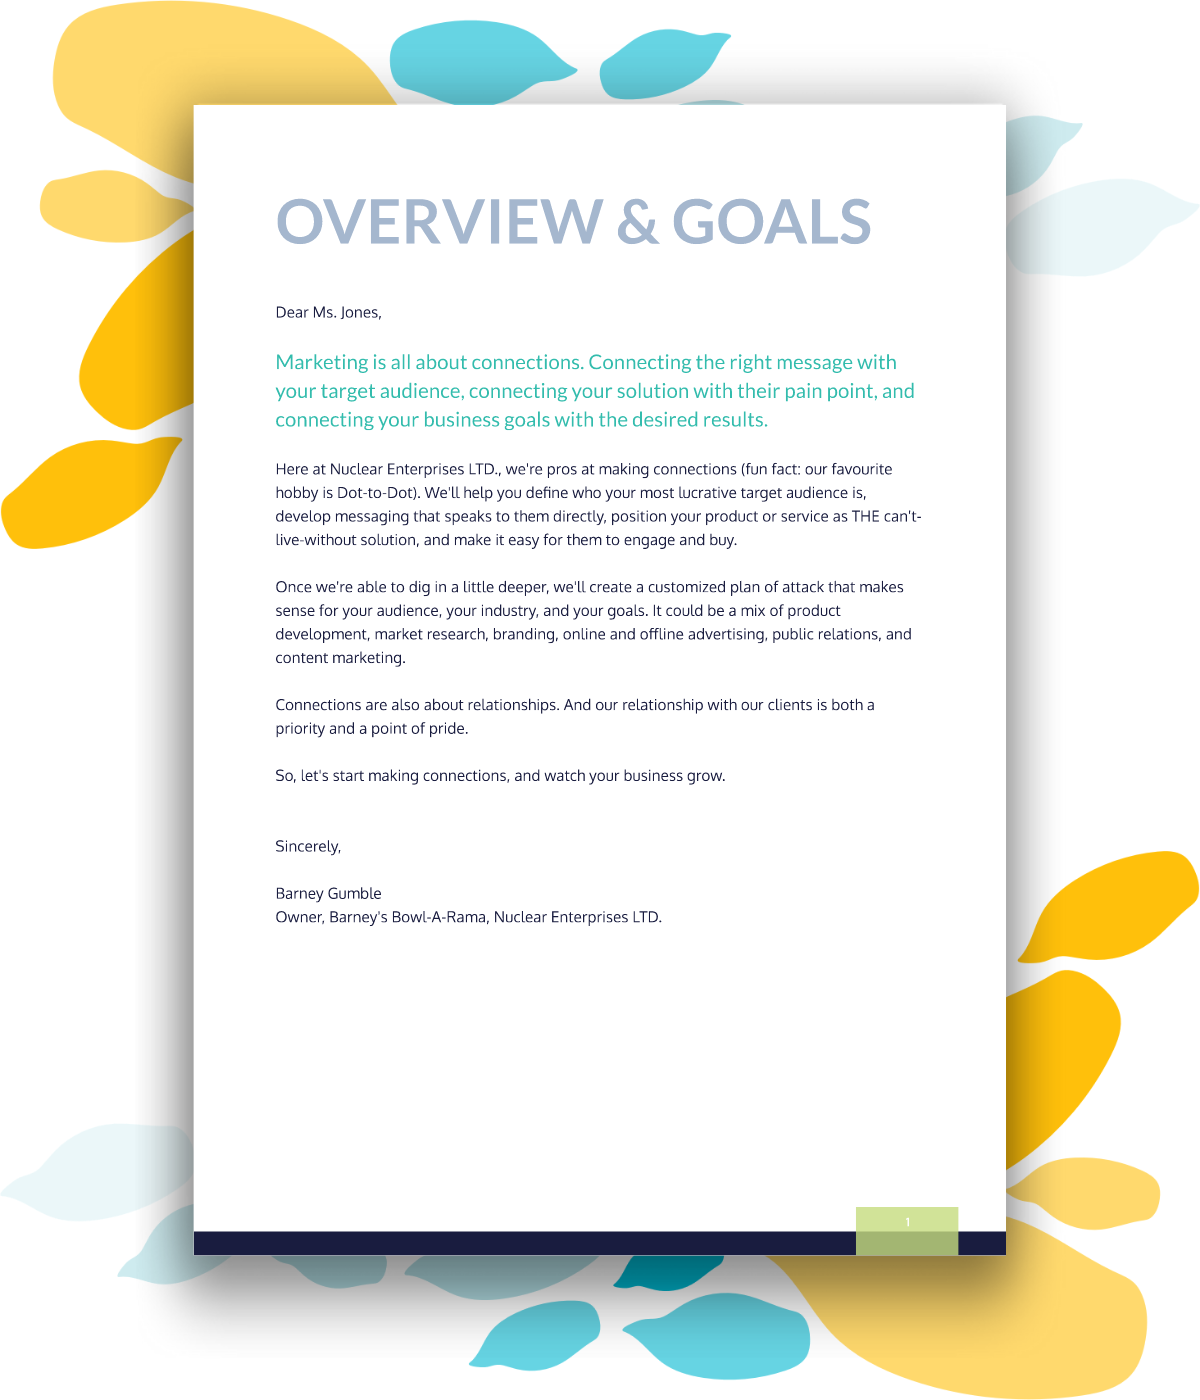 Example executive summary for a marketing proposal template.